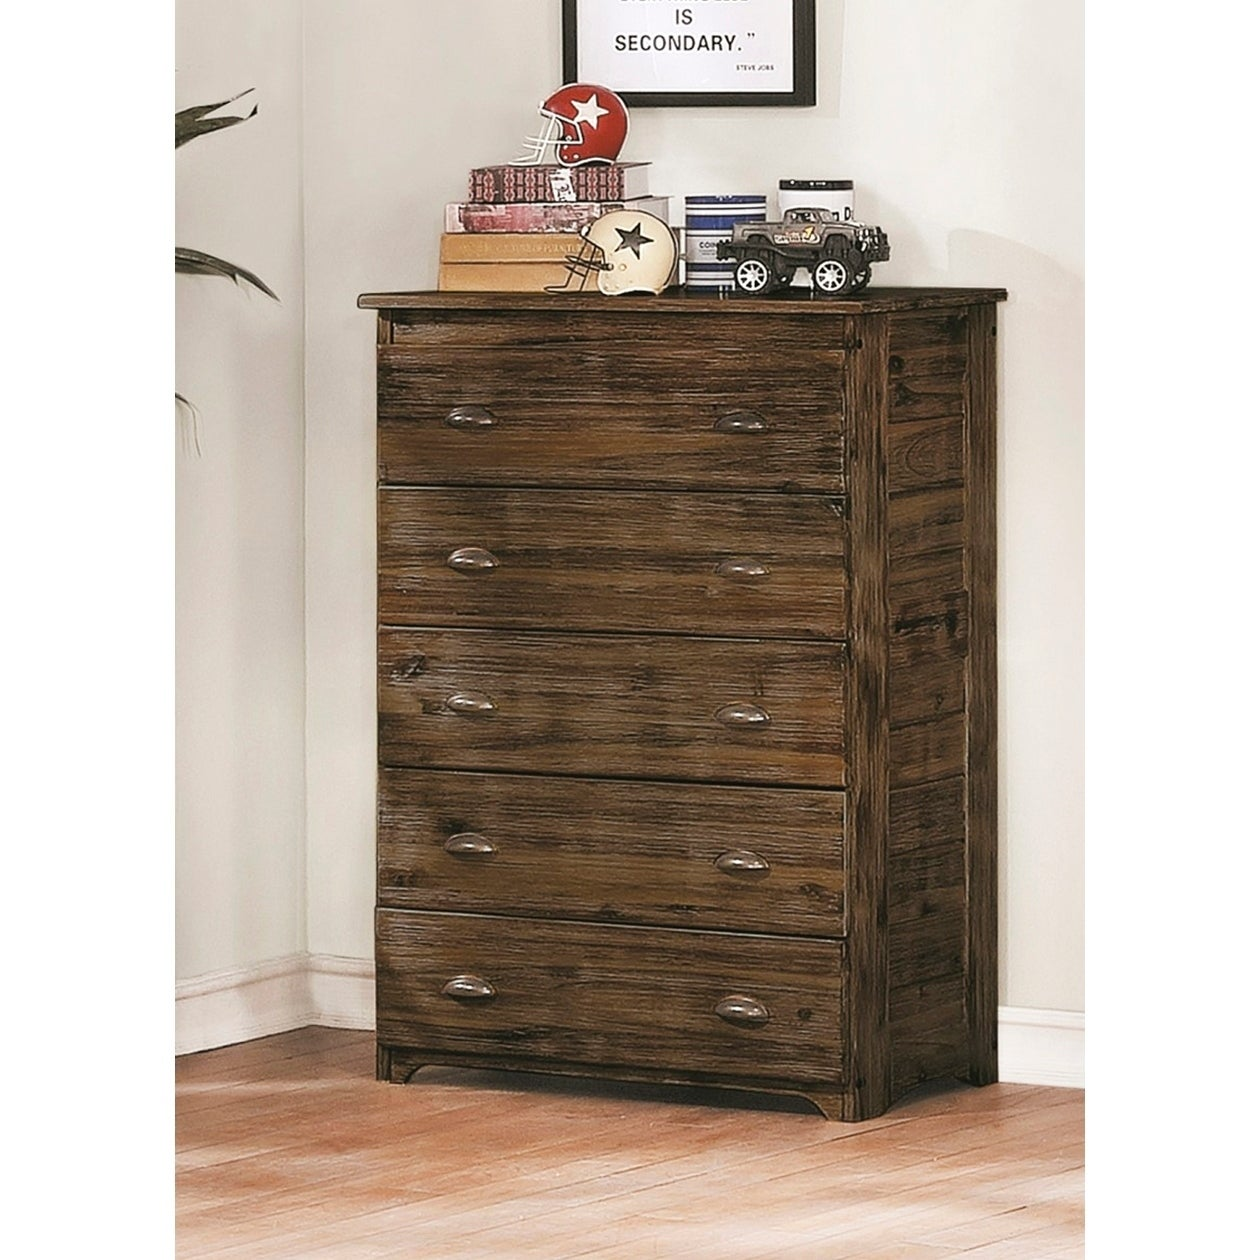 Shop american furniture classics assembled five drawer chest in solid acacia hardwoods and veneers free shipping today overstock com 26275484